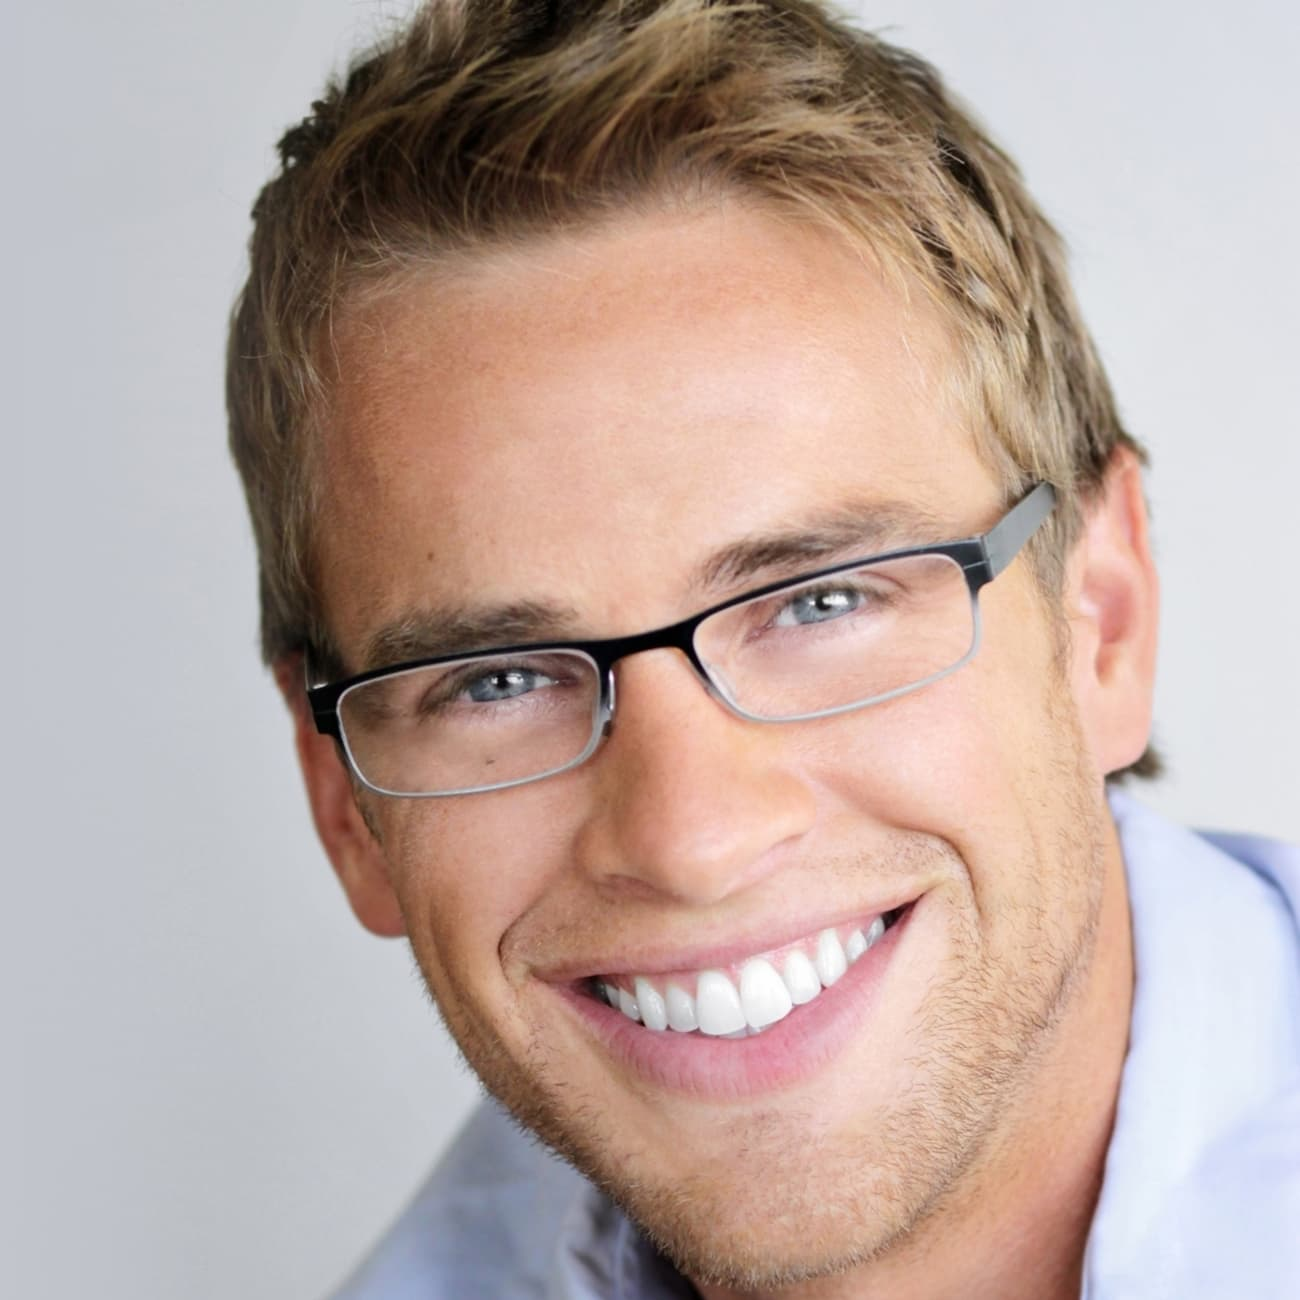 achieve a great smile with basalt dentistry cosmetic smiles